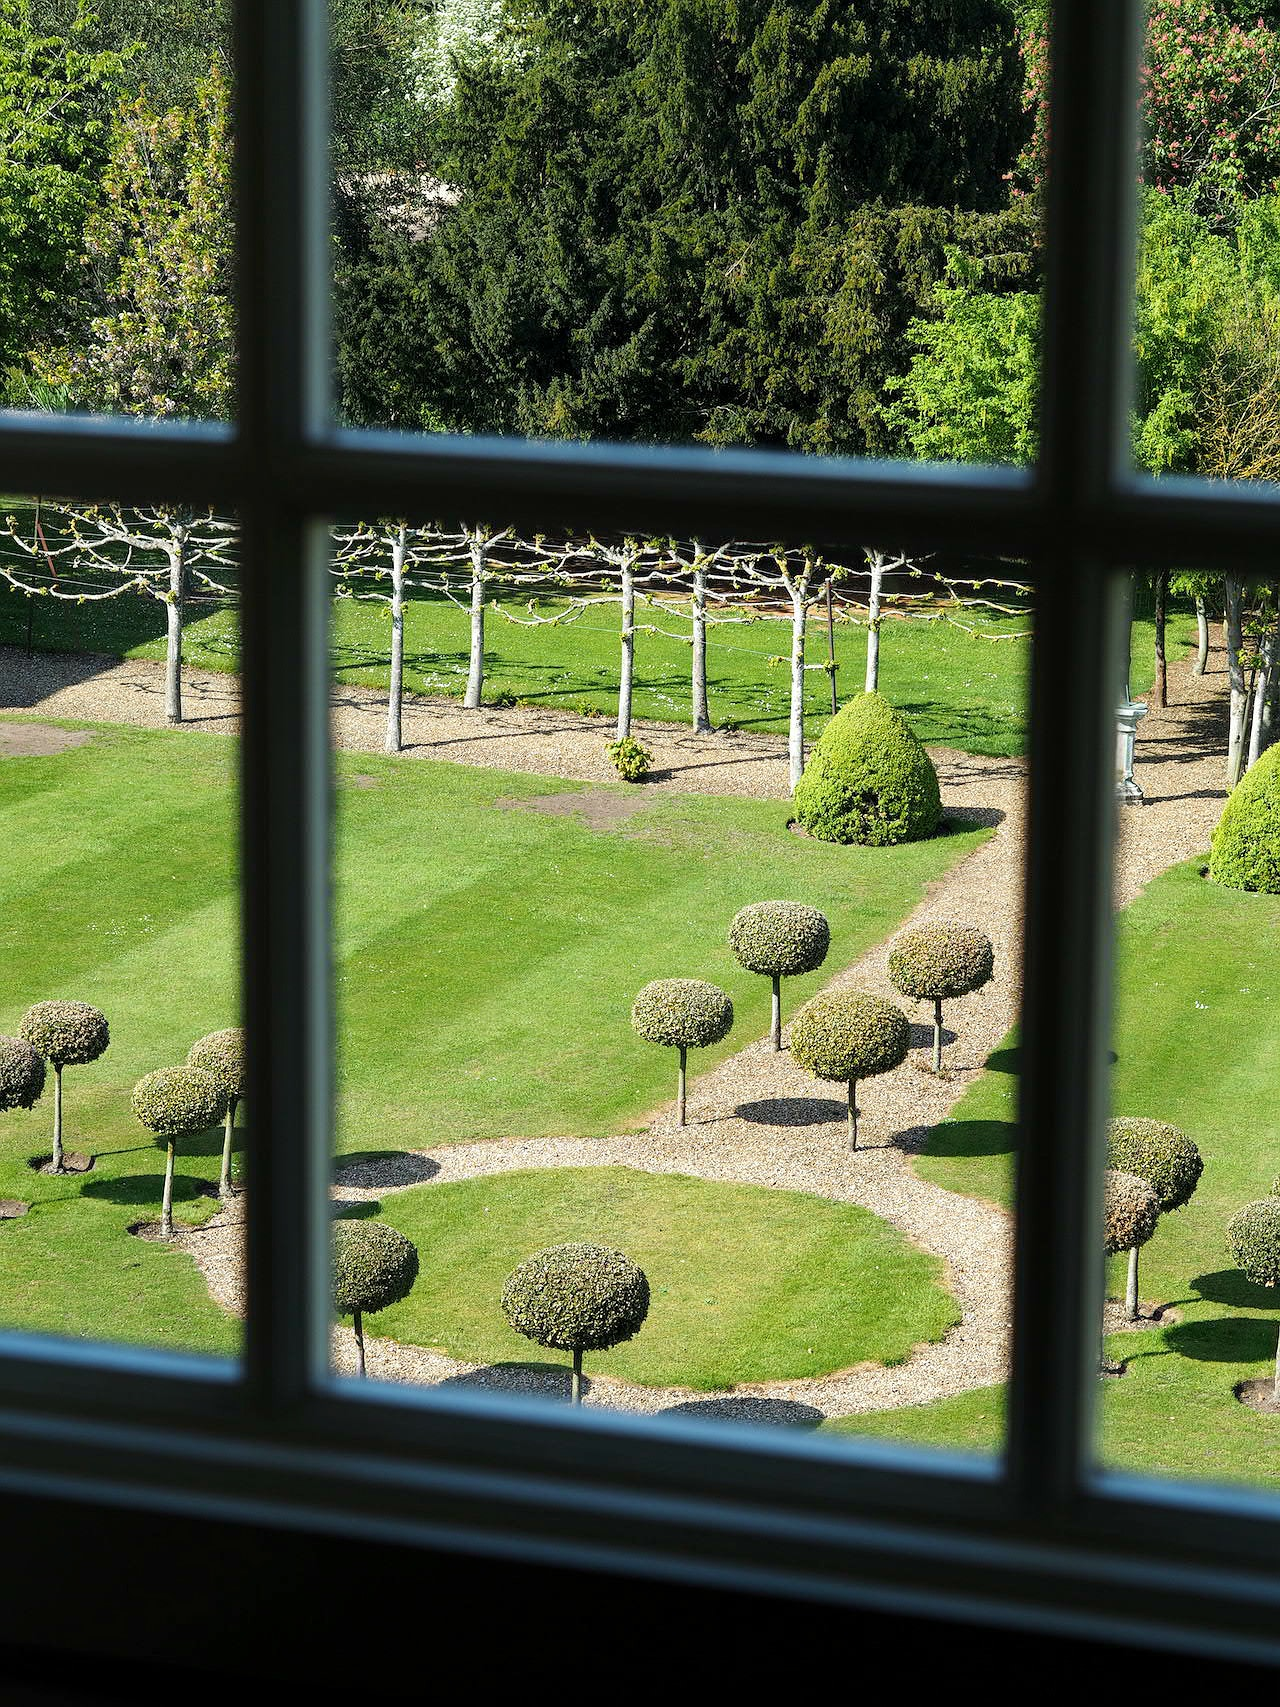 View of the Chicheley Hall gardens